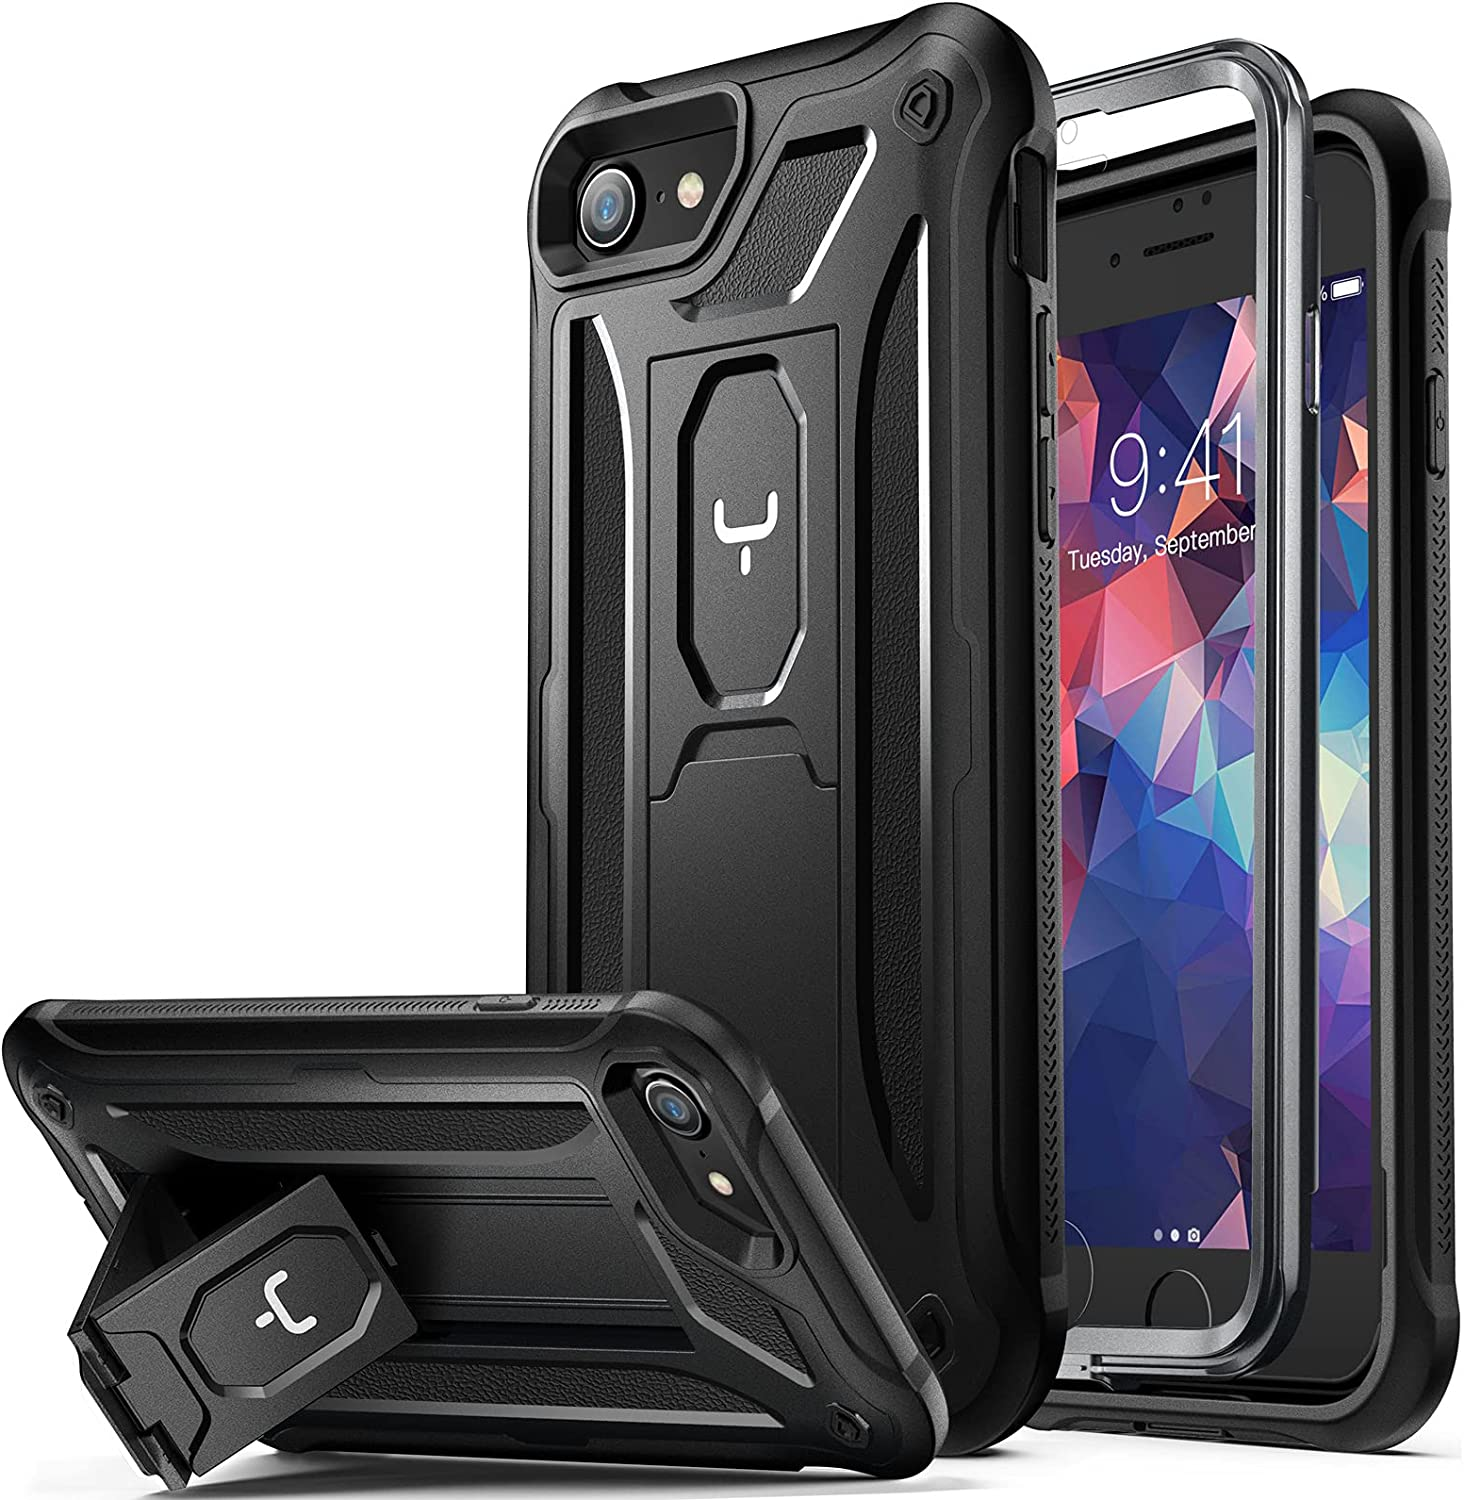 YOUMAKER [2021 Upgraded] iPhone SE 2020 Case, iPhone 8 Case, iPhone 7 Case, Built-in Screen Protector Kickstand Full Body Heavy Duty Shockproof Cover for iPhone SE & iPhone 8/7 4.7 inch - Black